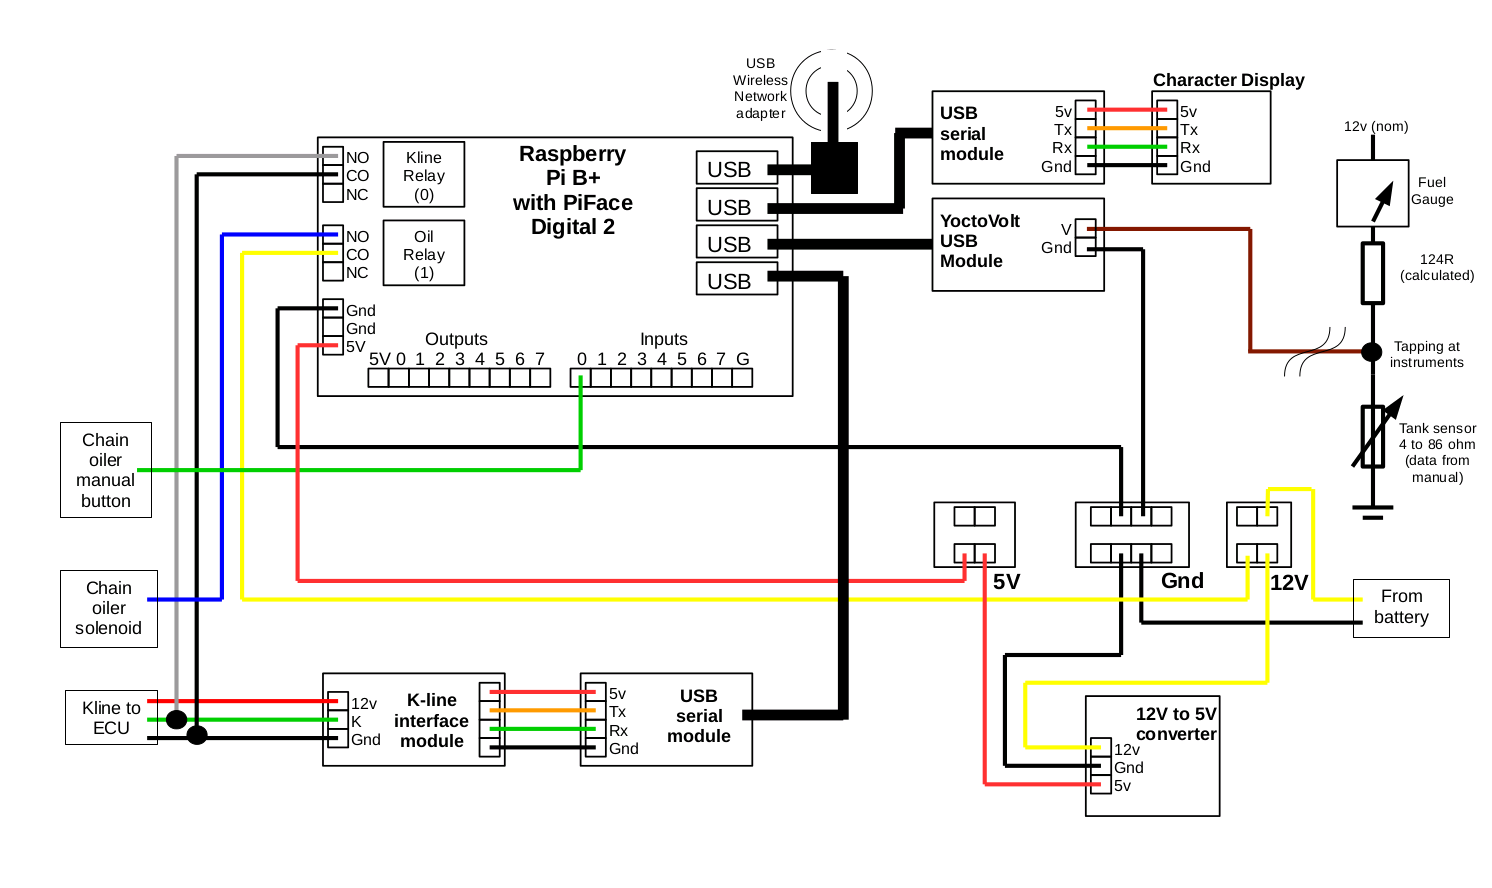 Data Link Connector Diagram Wiring Master Blogs J1939 Obd1 Port Library Rh 5 Nmun Berlin De Pinout